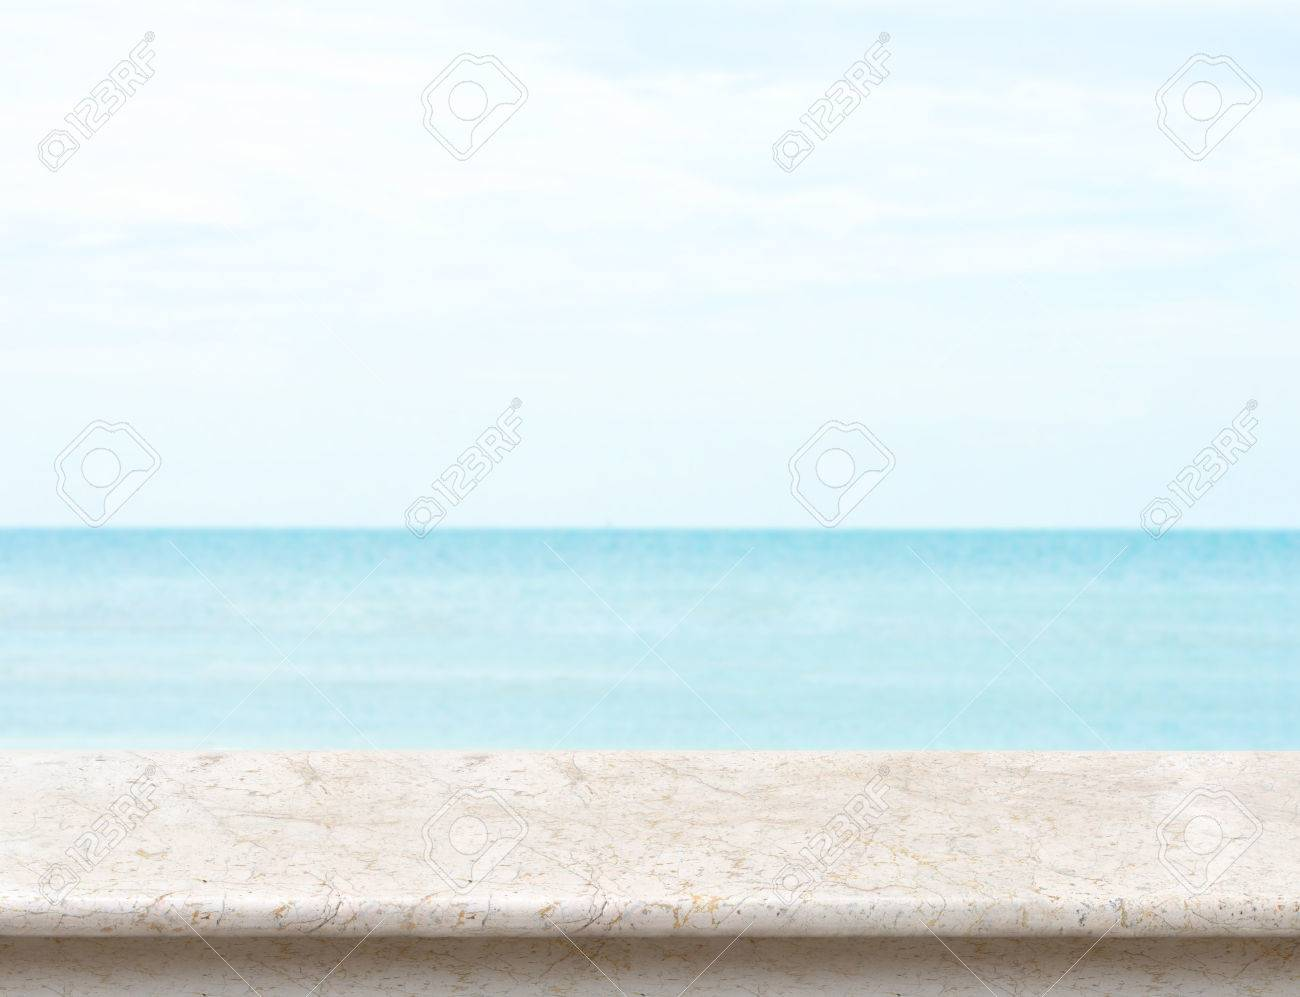 white marble table top. Stock Photo - White Marble Table Top With Blurred Sea And Blue Sky At Background, Mock Up Template For Display Or Montage Of Your Product, Summer Holiday D